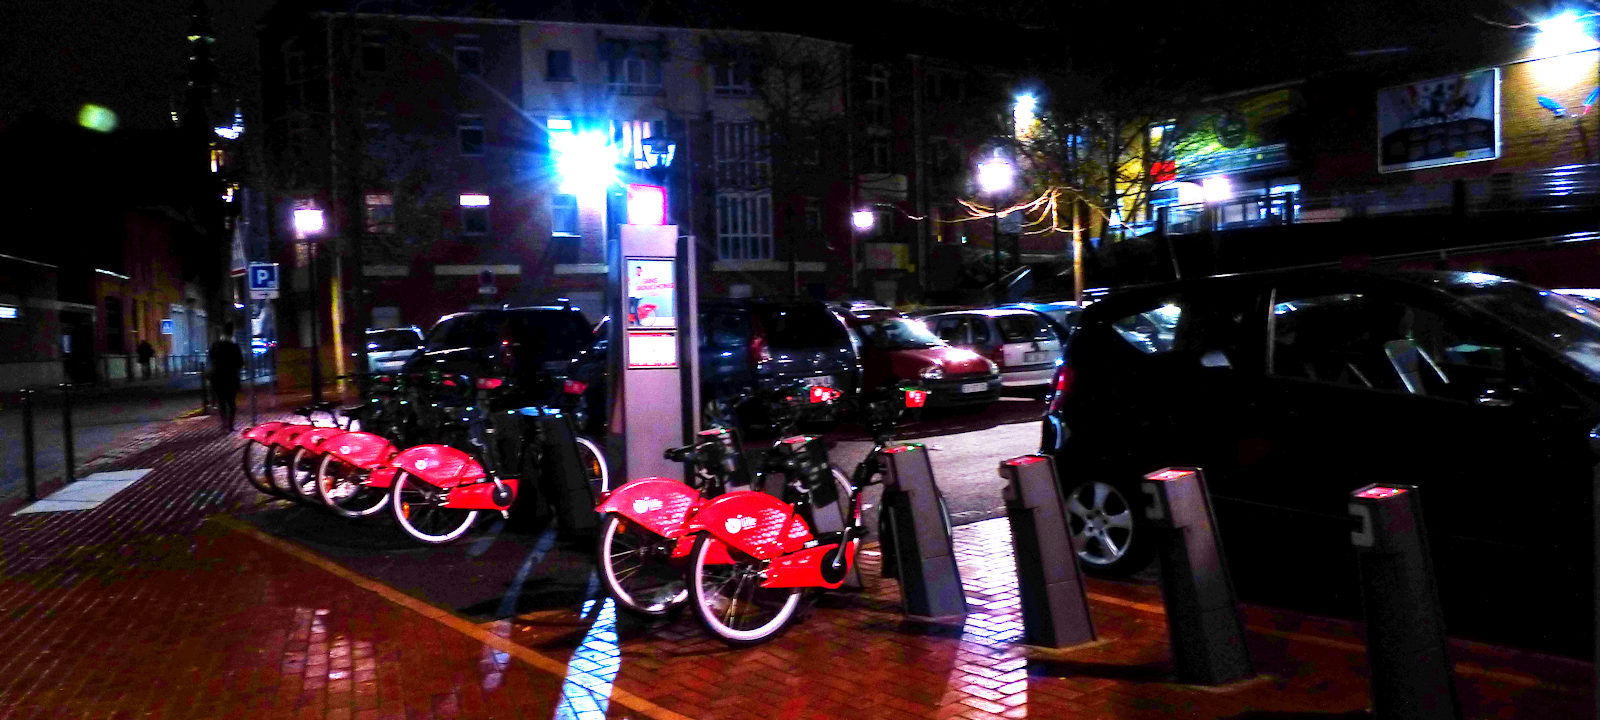 Tourcoing V'Lille - Rue des Anges by night